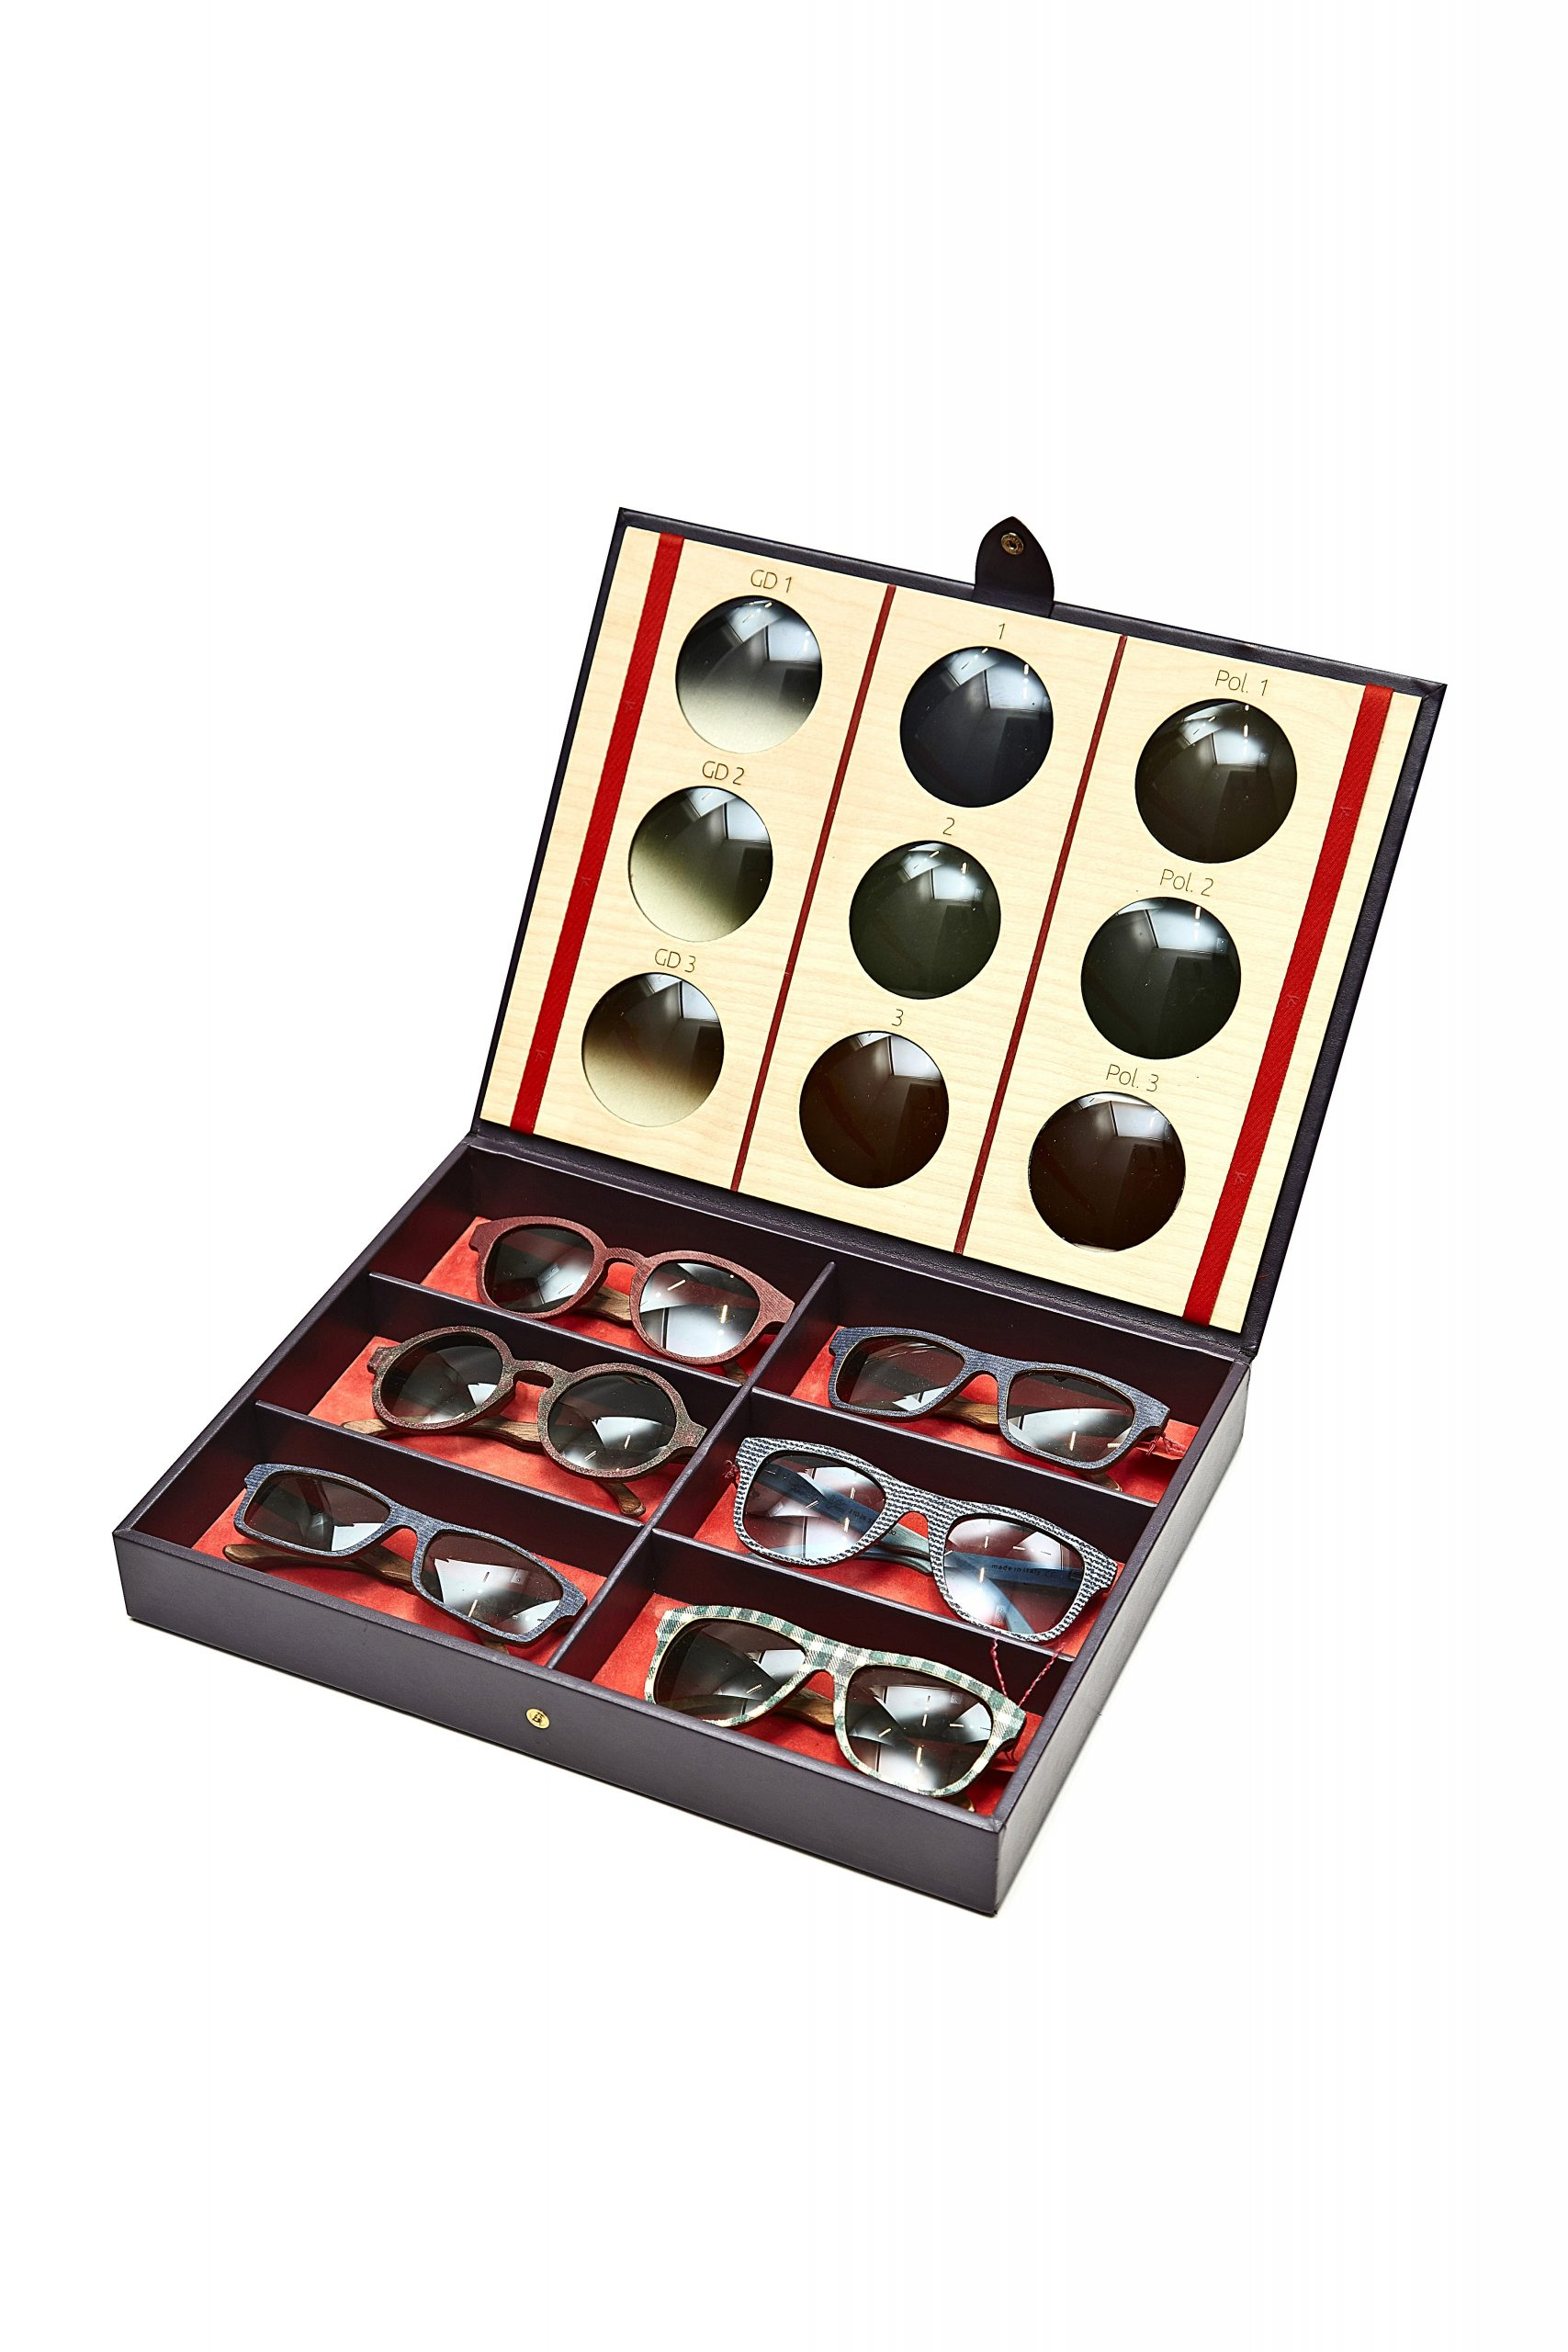 Made-to-order sunglasses boxset (2)